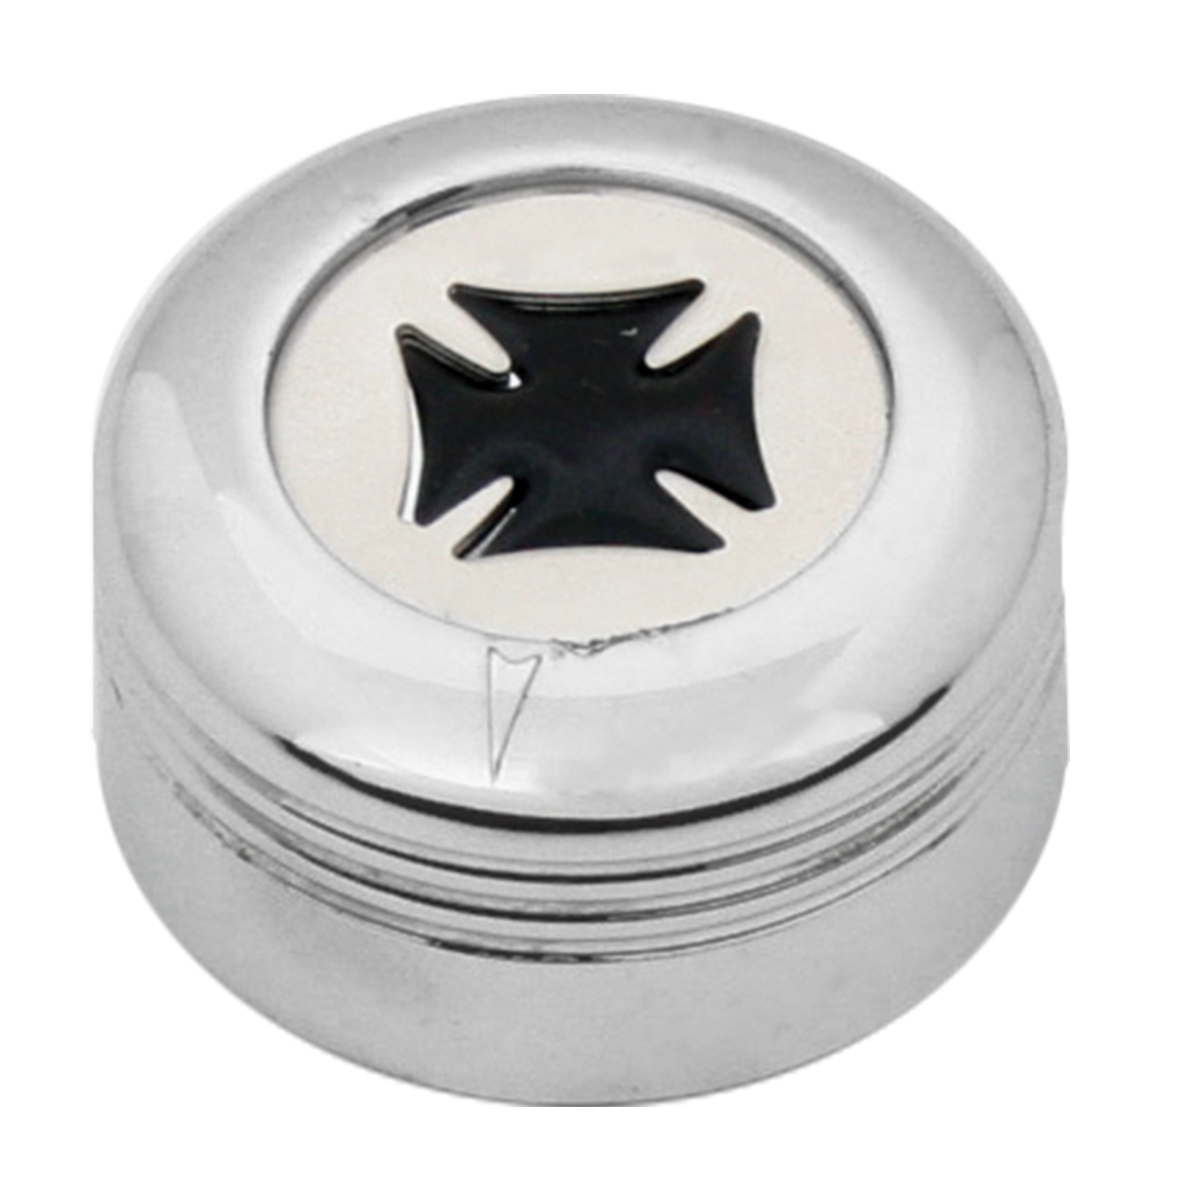 Chrome Plastic A/C Knob w/ Black Iron Cross for Pete